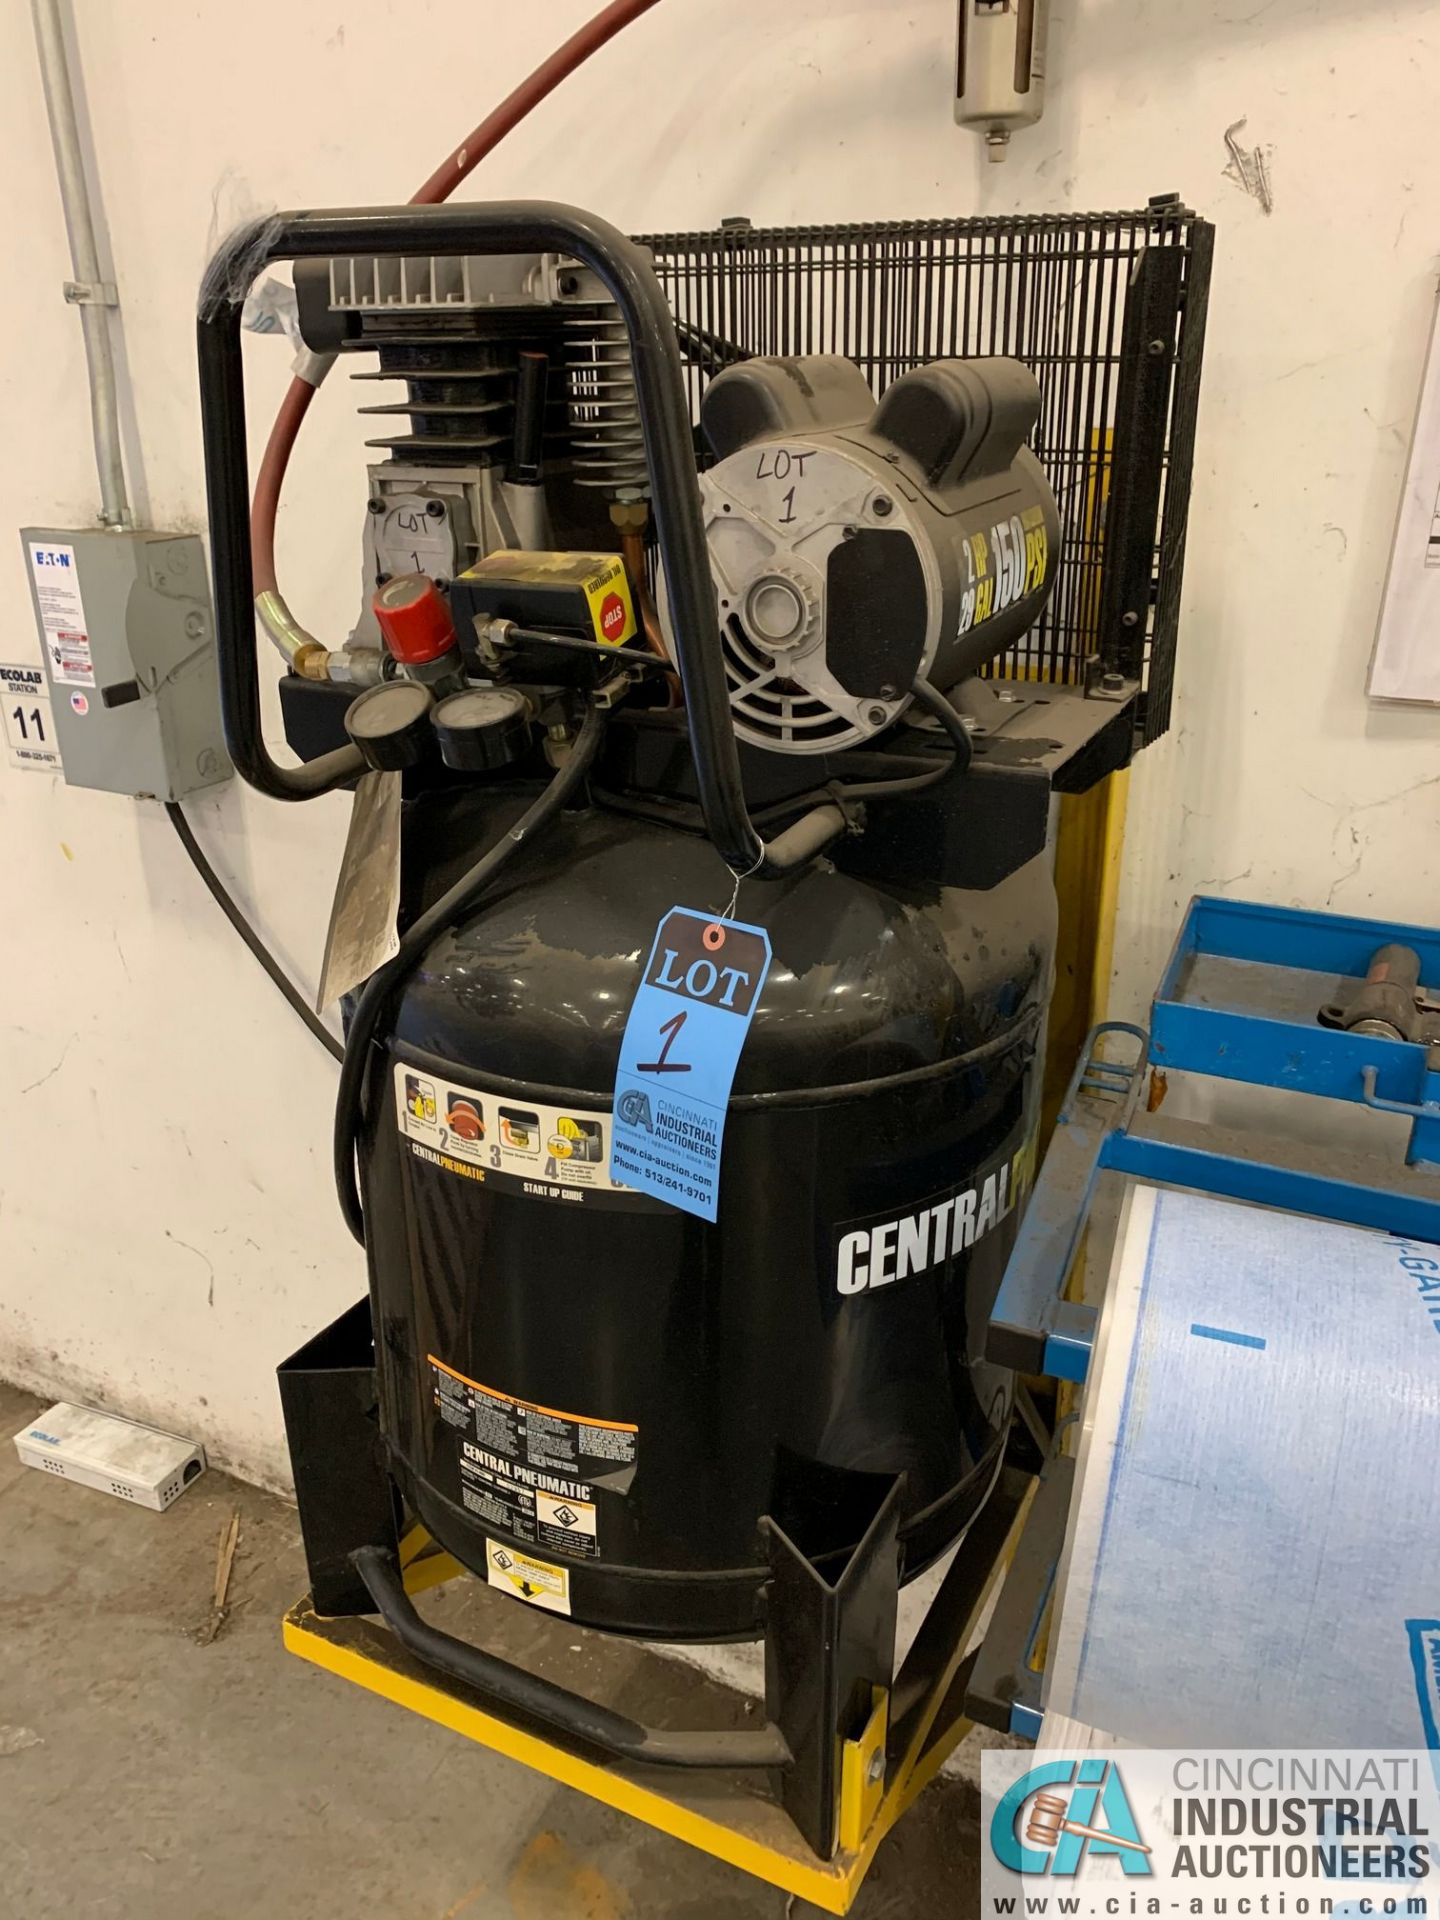 2-HP CENTRAL PNEUMATIC ITEM 61489 AIR COMPRESSOR; S/N 02957, 29-GALLON TANK, 150 MAX PSI (2015) (